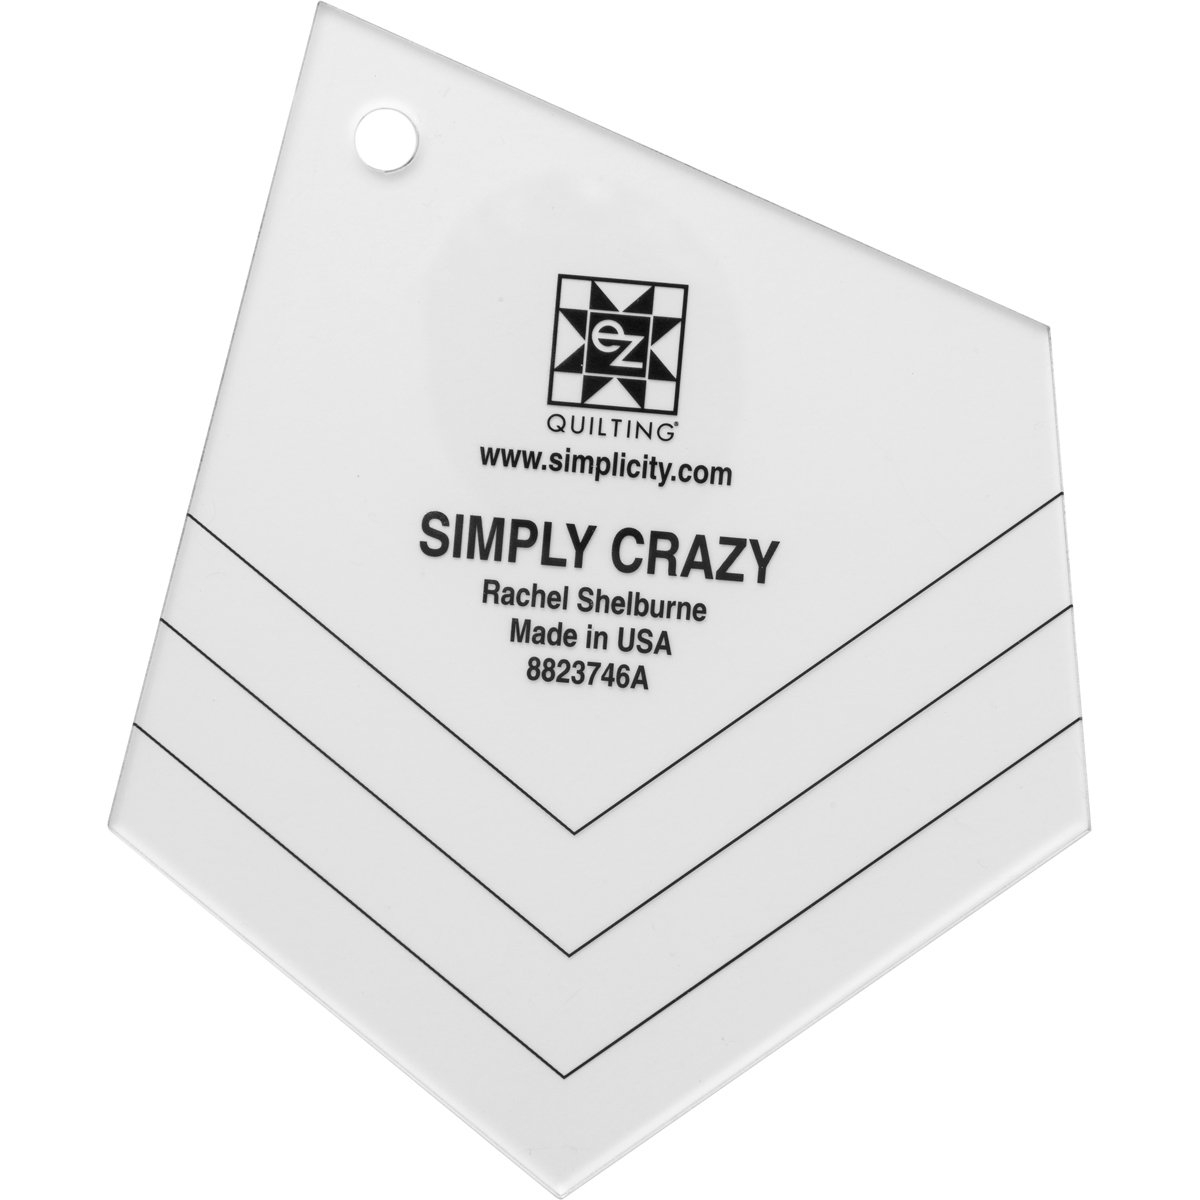 Wrights EZ Quilting 8823746 Simply Crazy Tool Simplicity Creative Group Inc